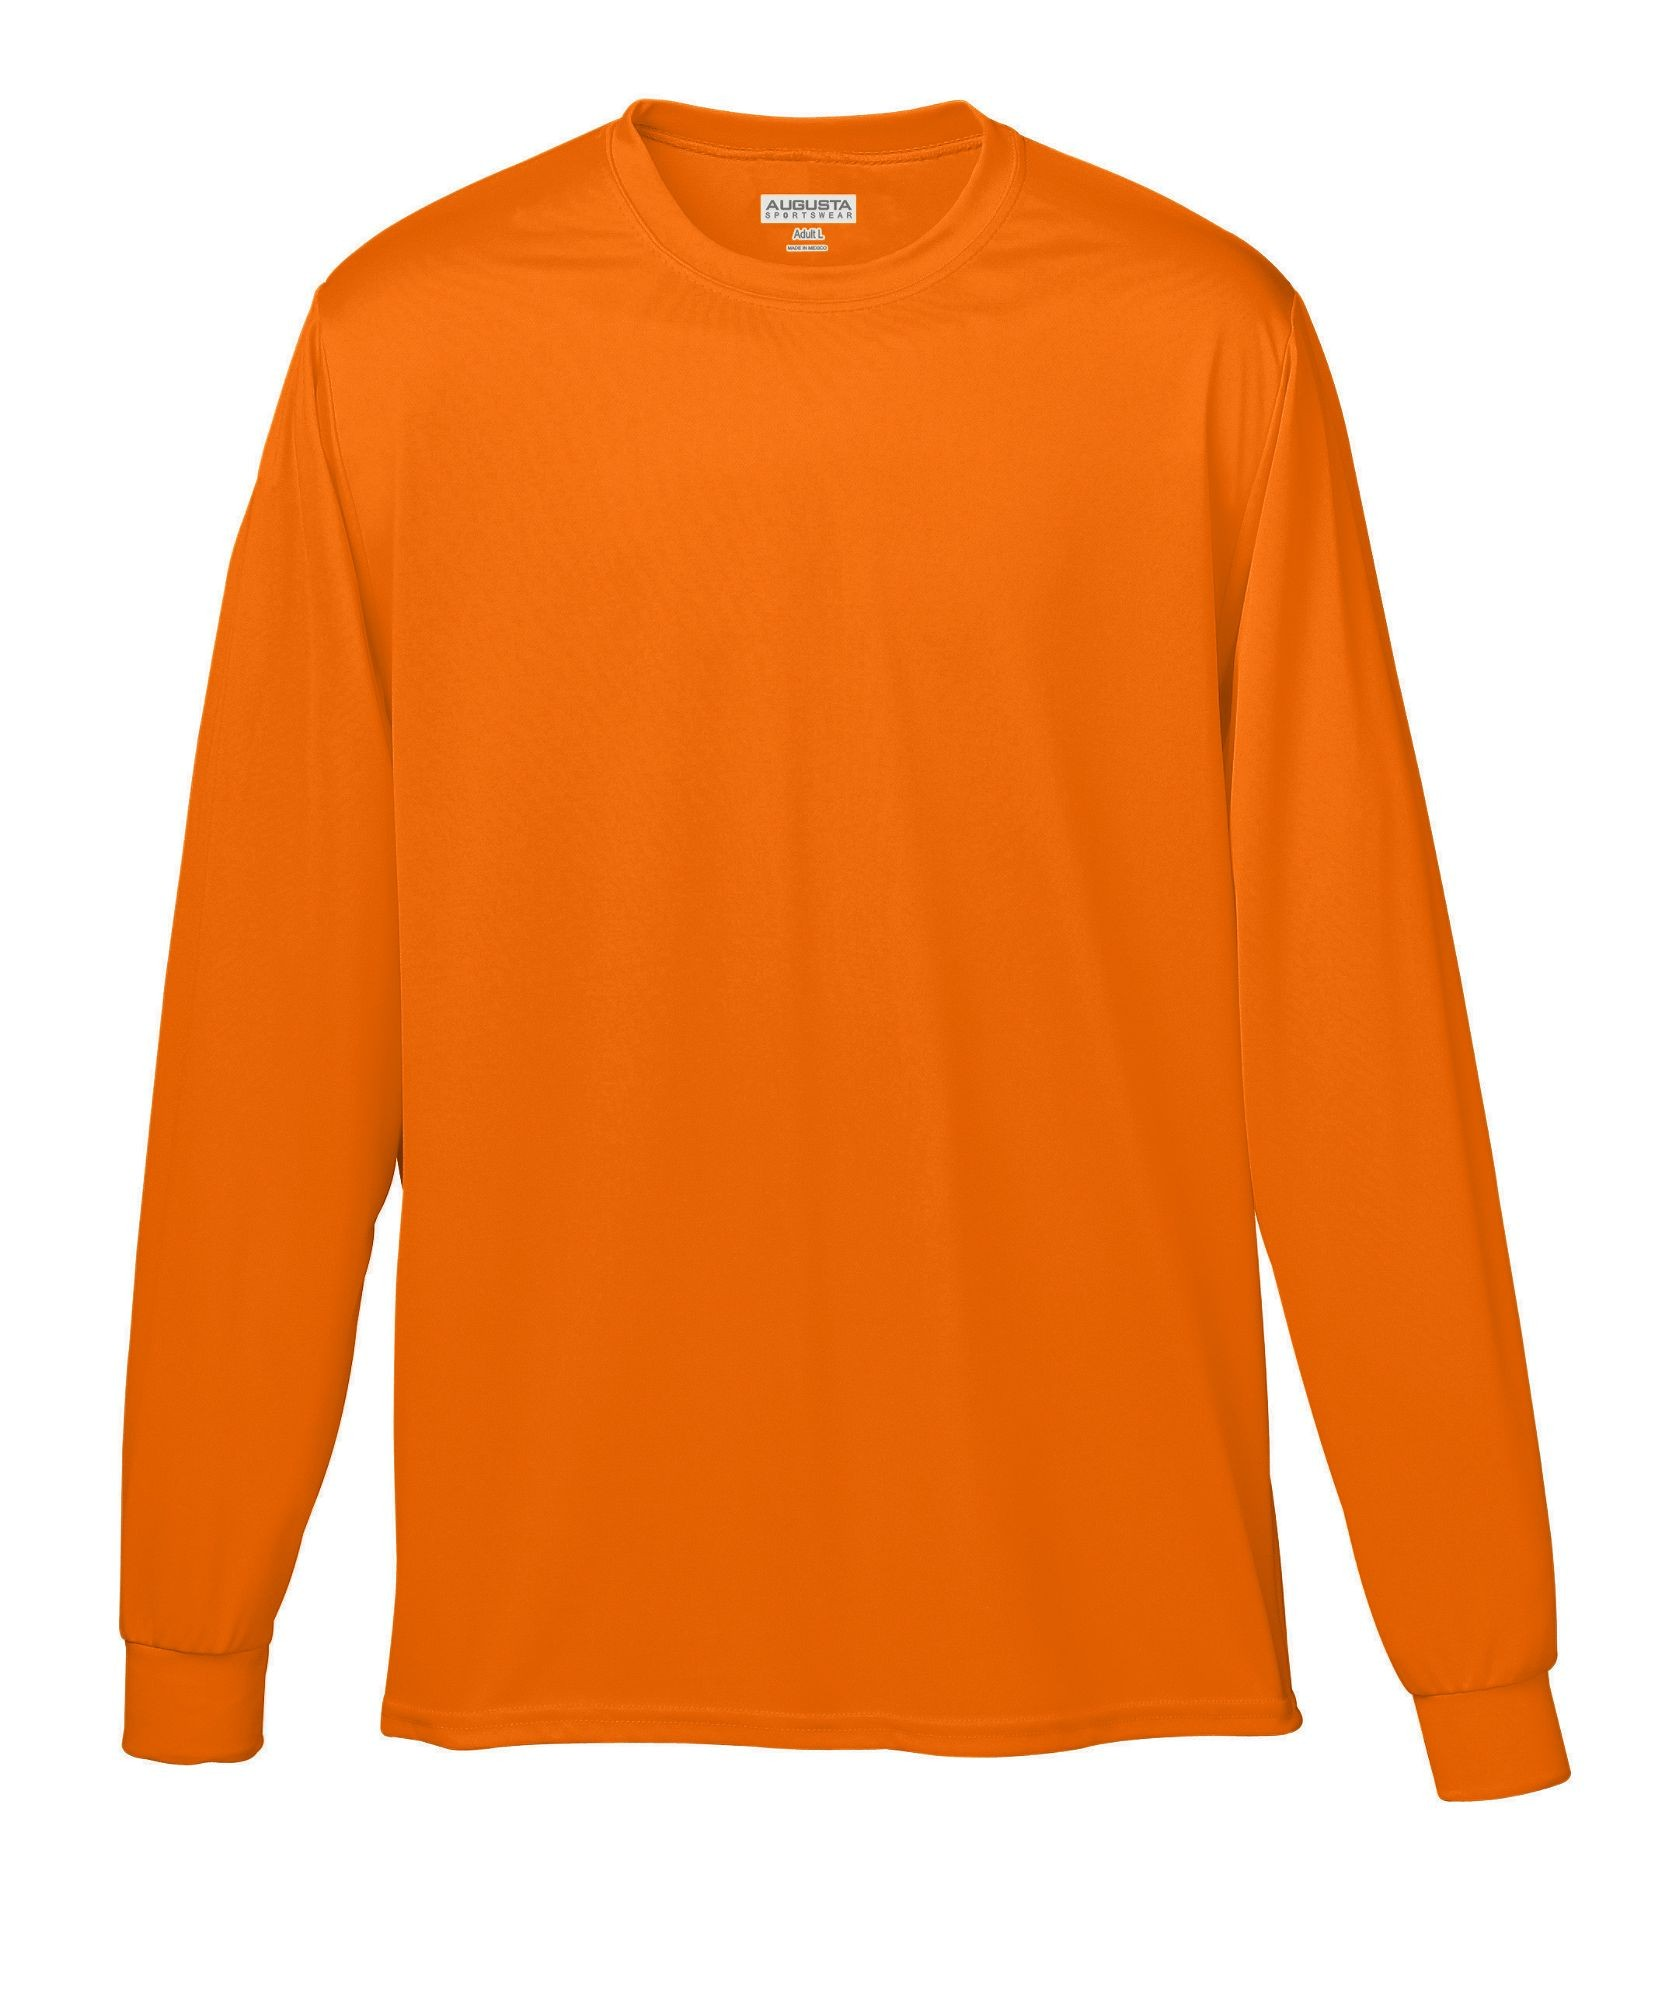 Wicking long sleeve t shirt for What is a long sleeve t shirt